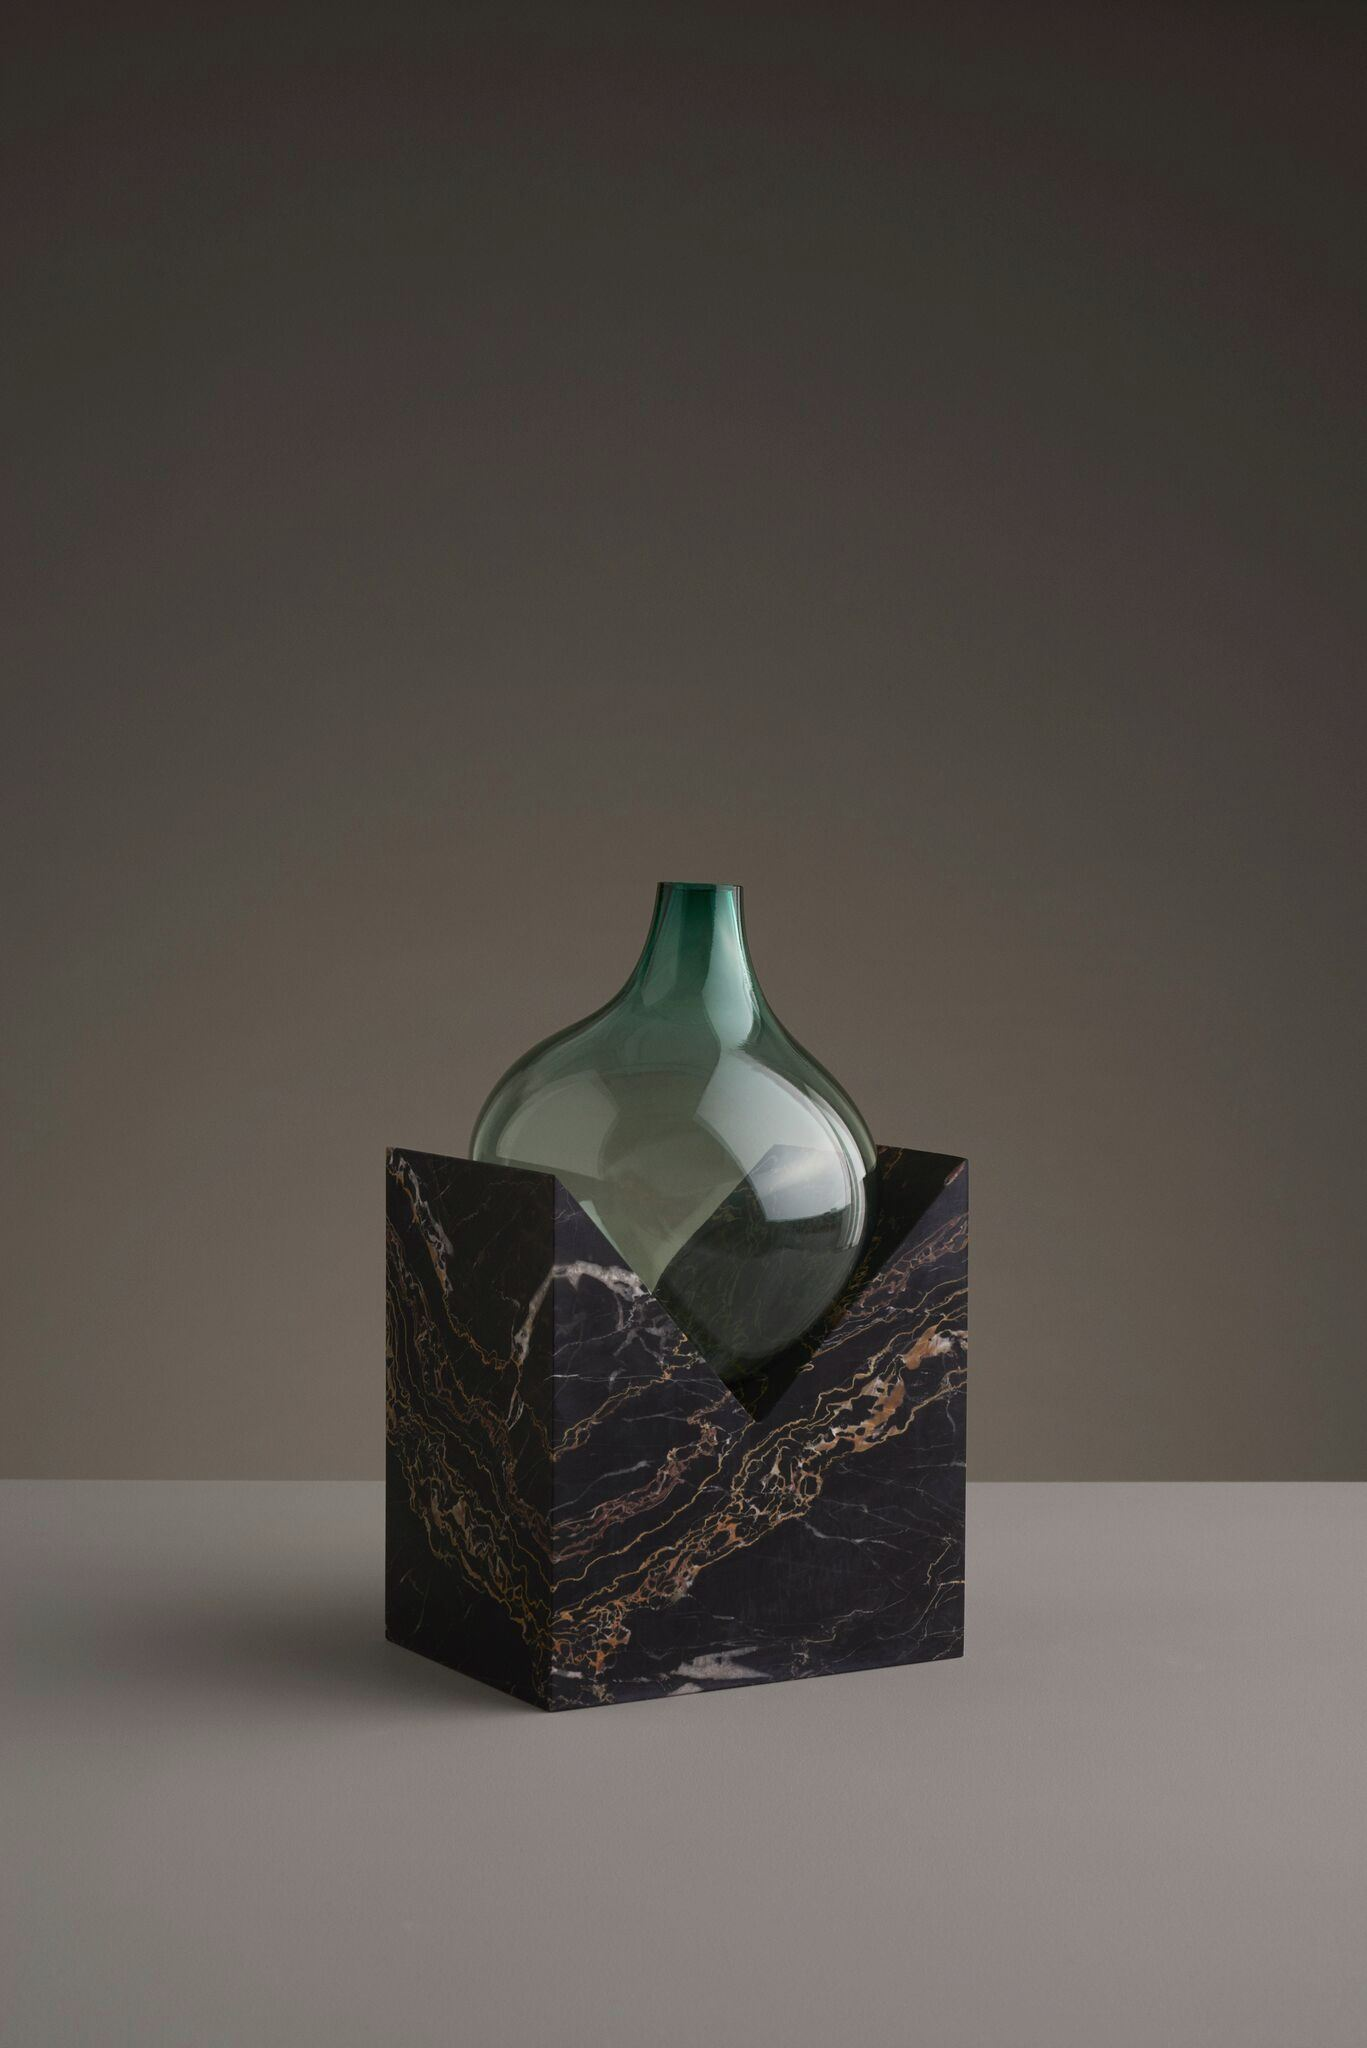 Glass and stone vase from Studio E.O